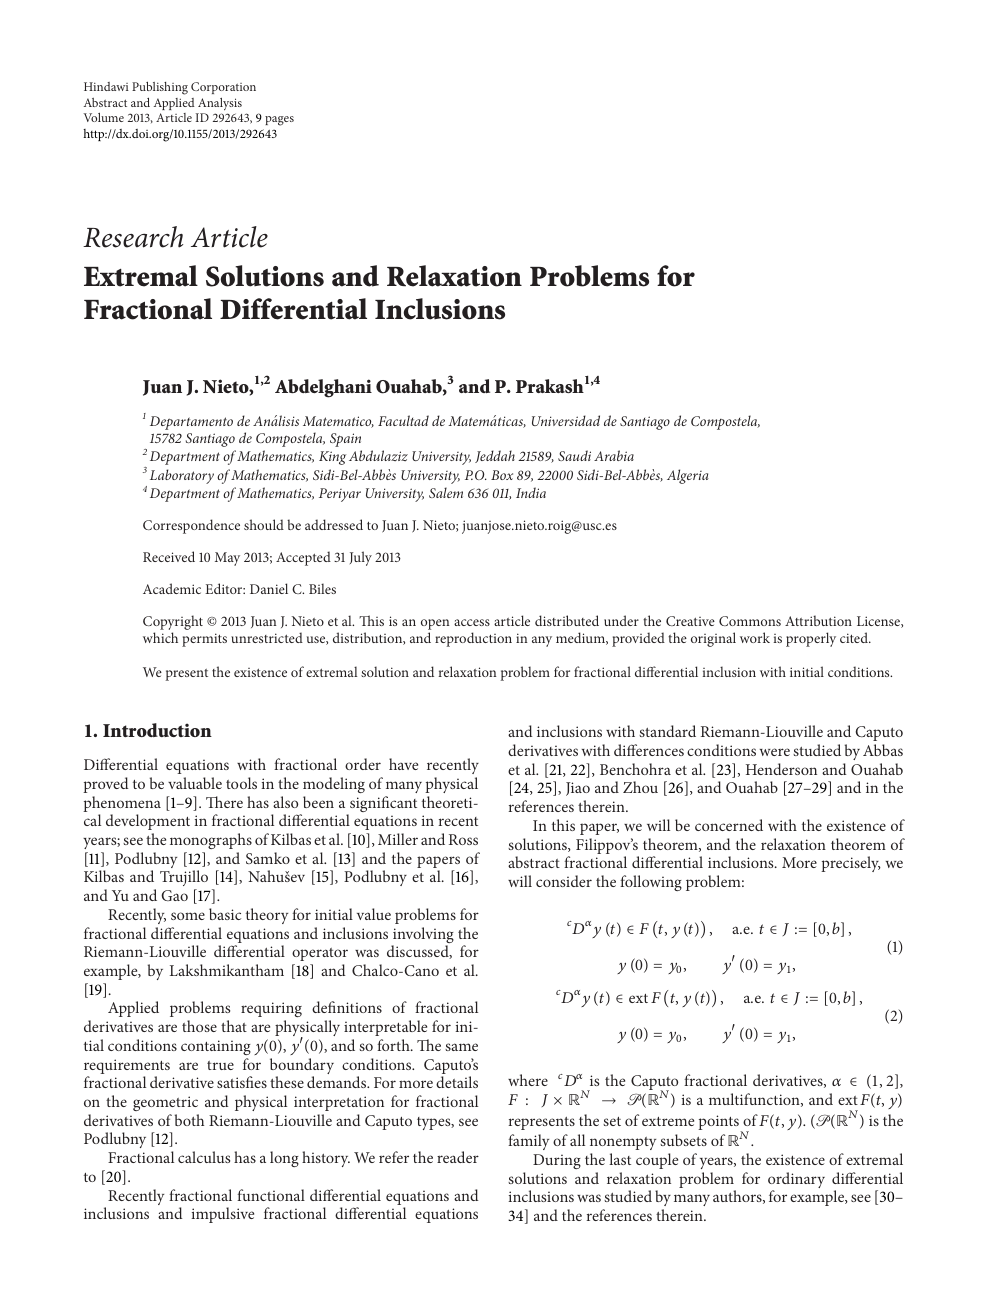 Extremal Solutions and Relaxation Problems for Fractional